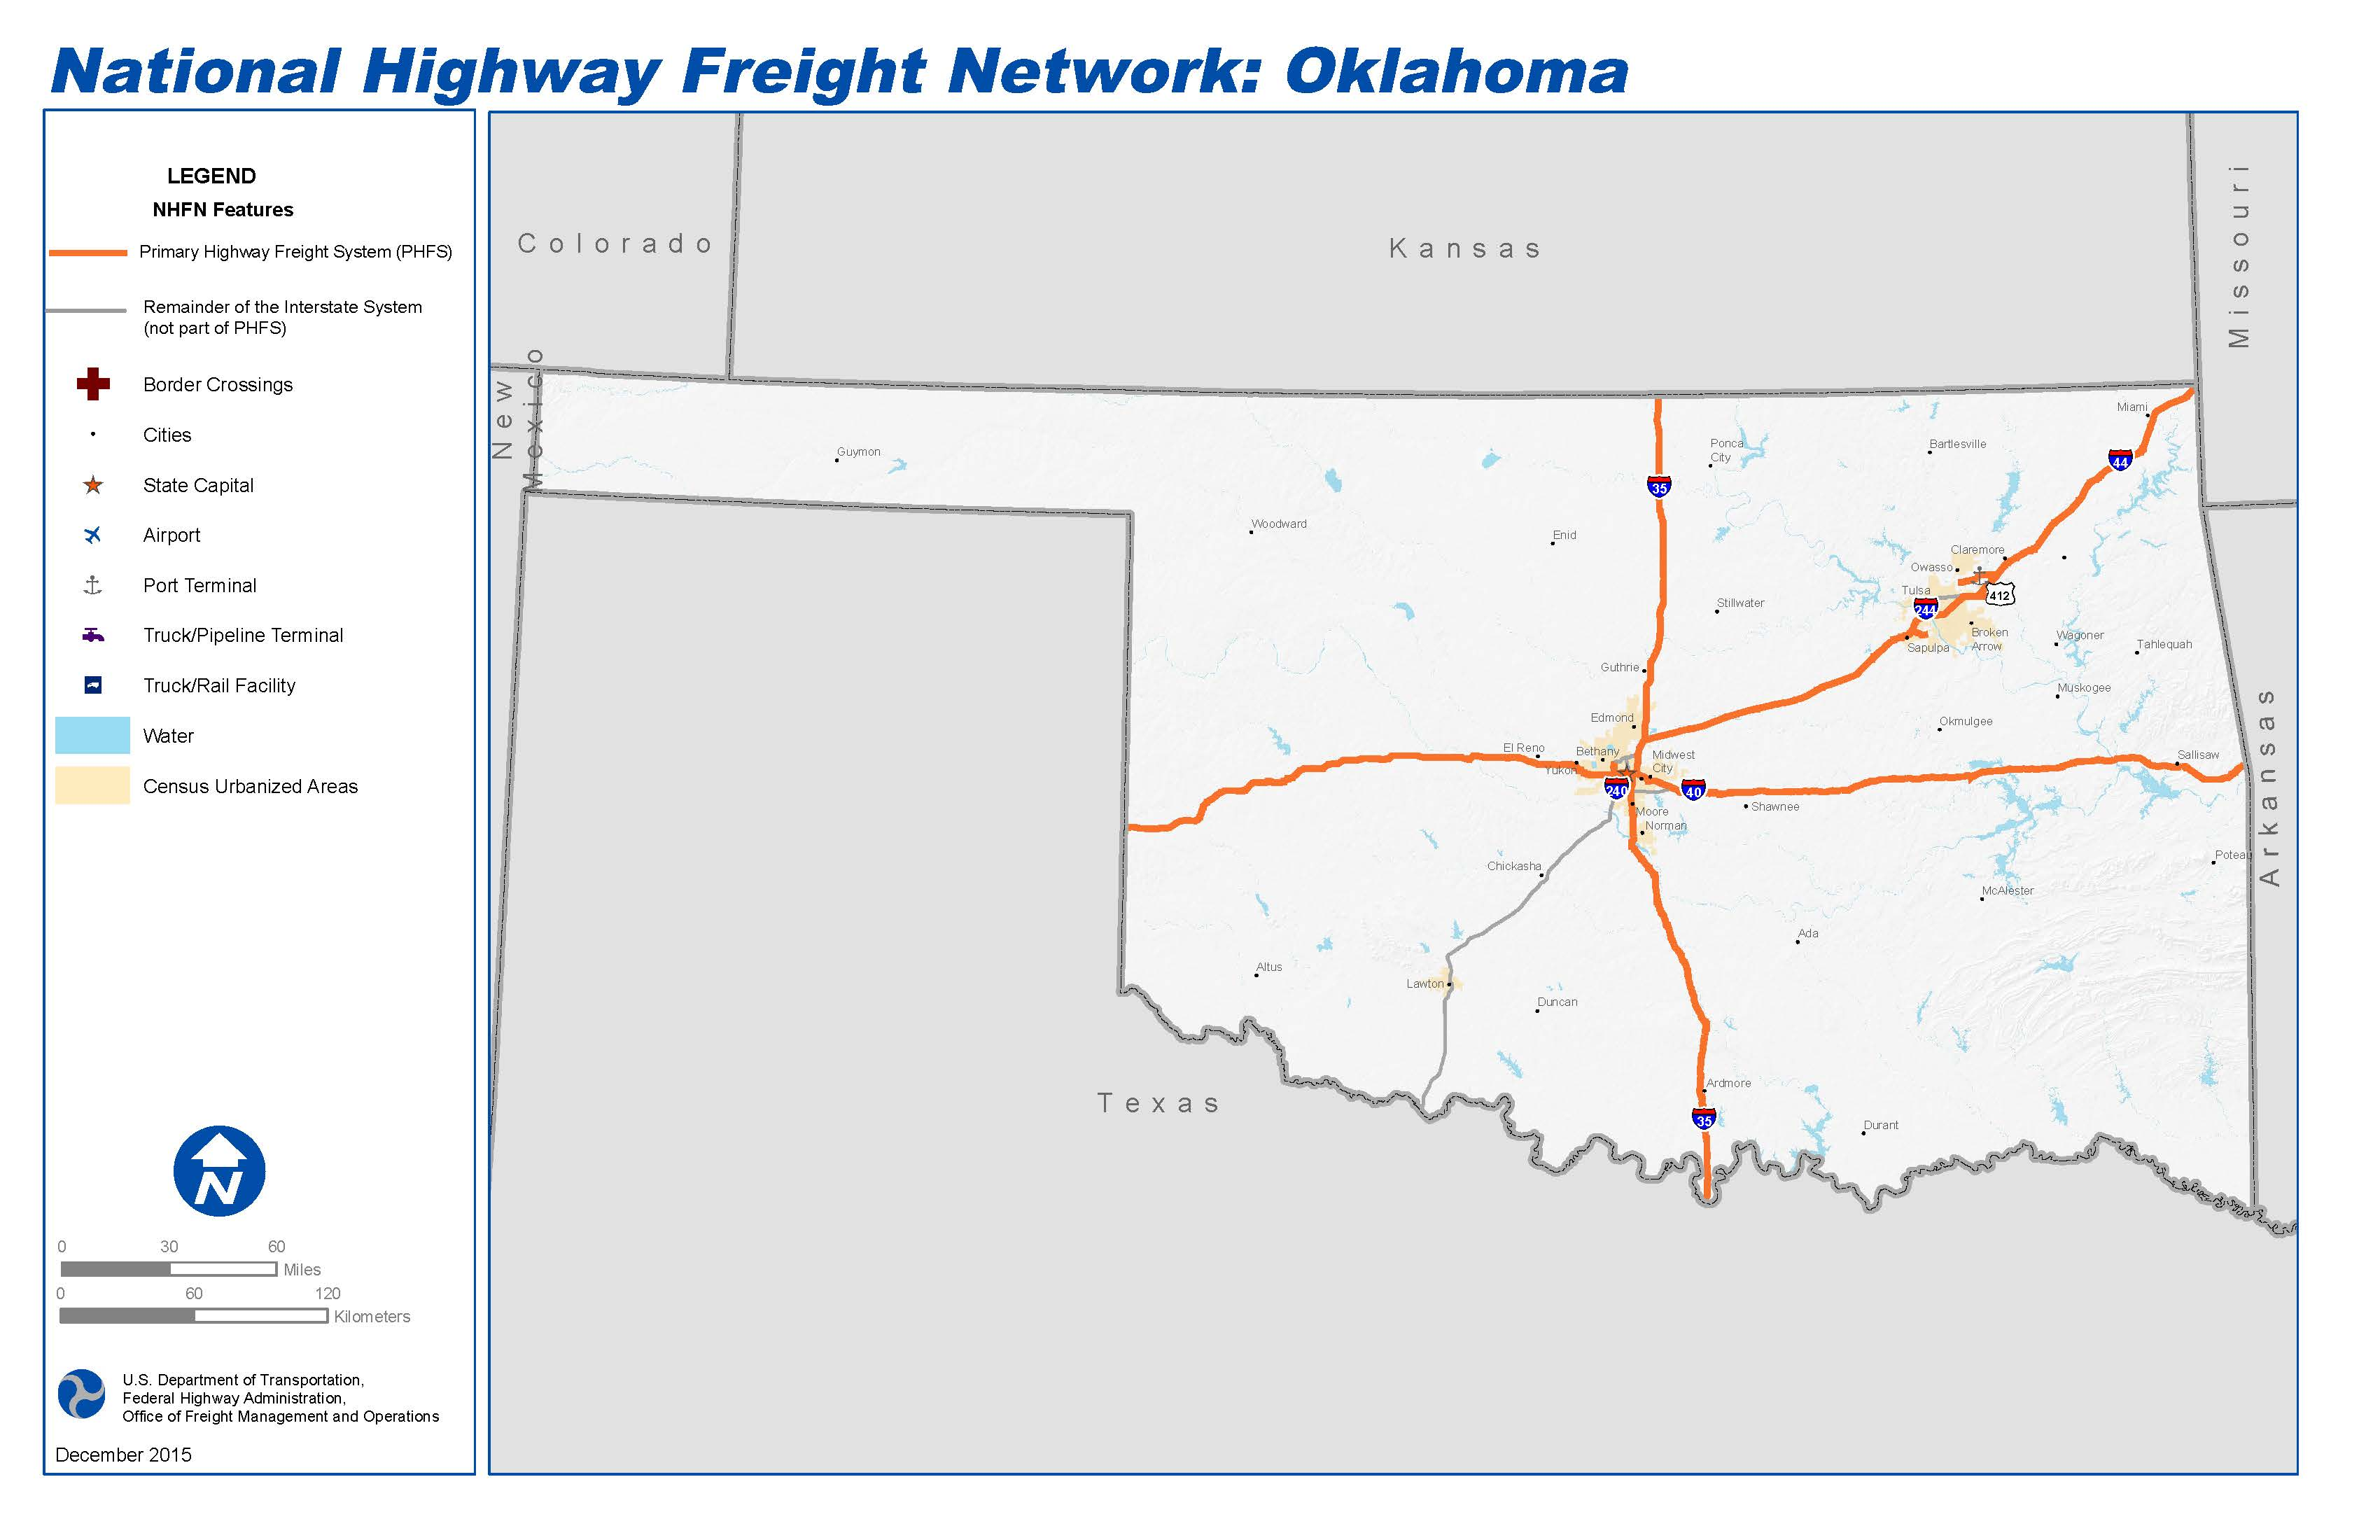 National Highway Freight Network Map And Tables For Oklahoma - Oklahoma highway map